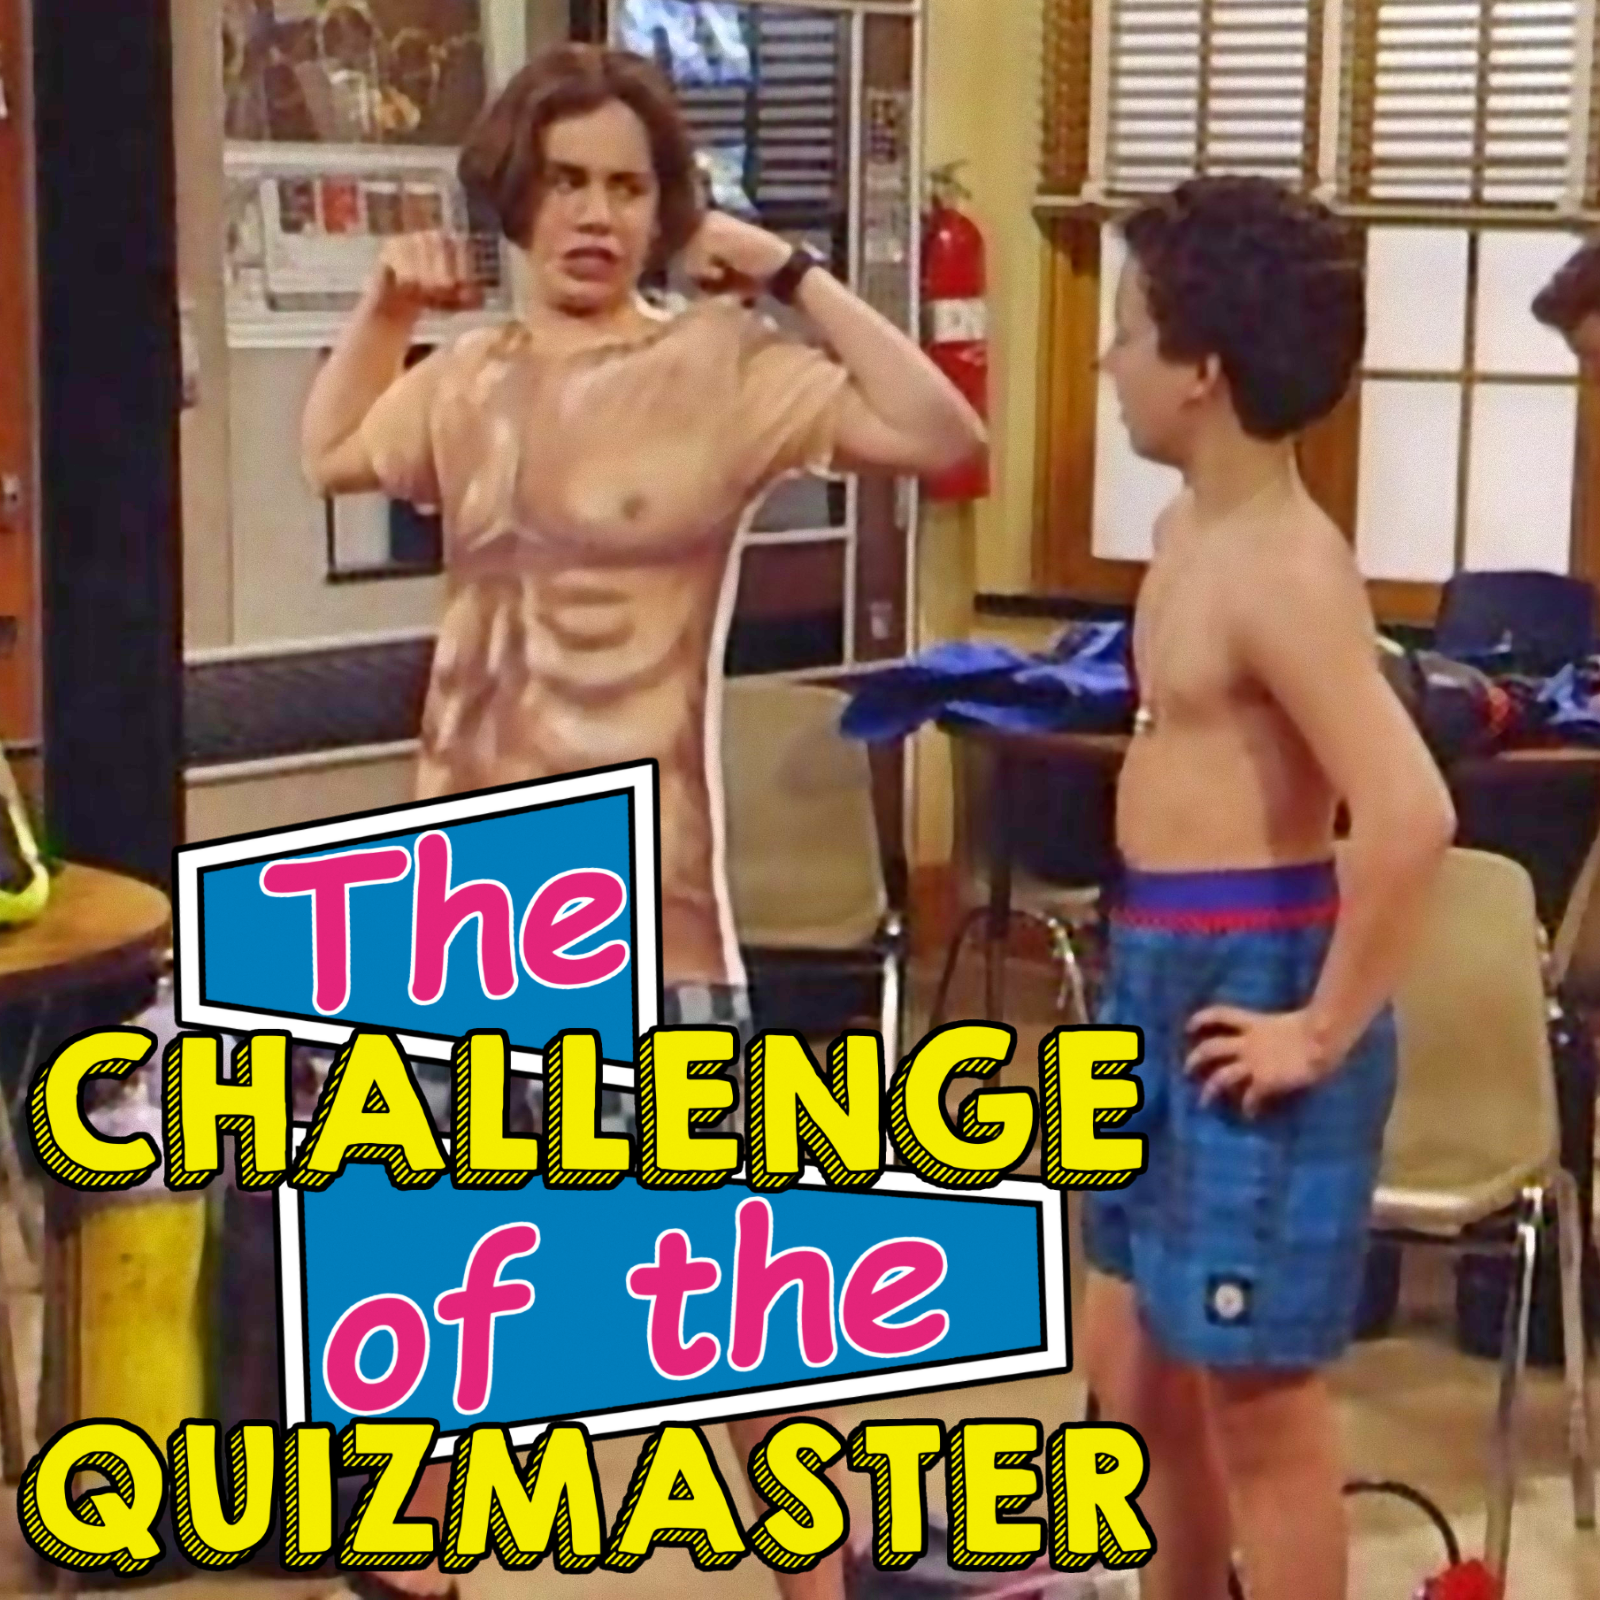 The Challenge of the Quizmaster: the Trials of Cris, pt3